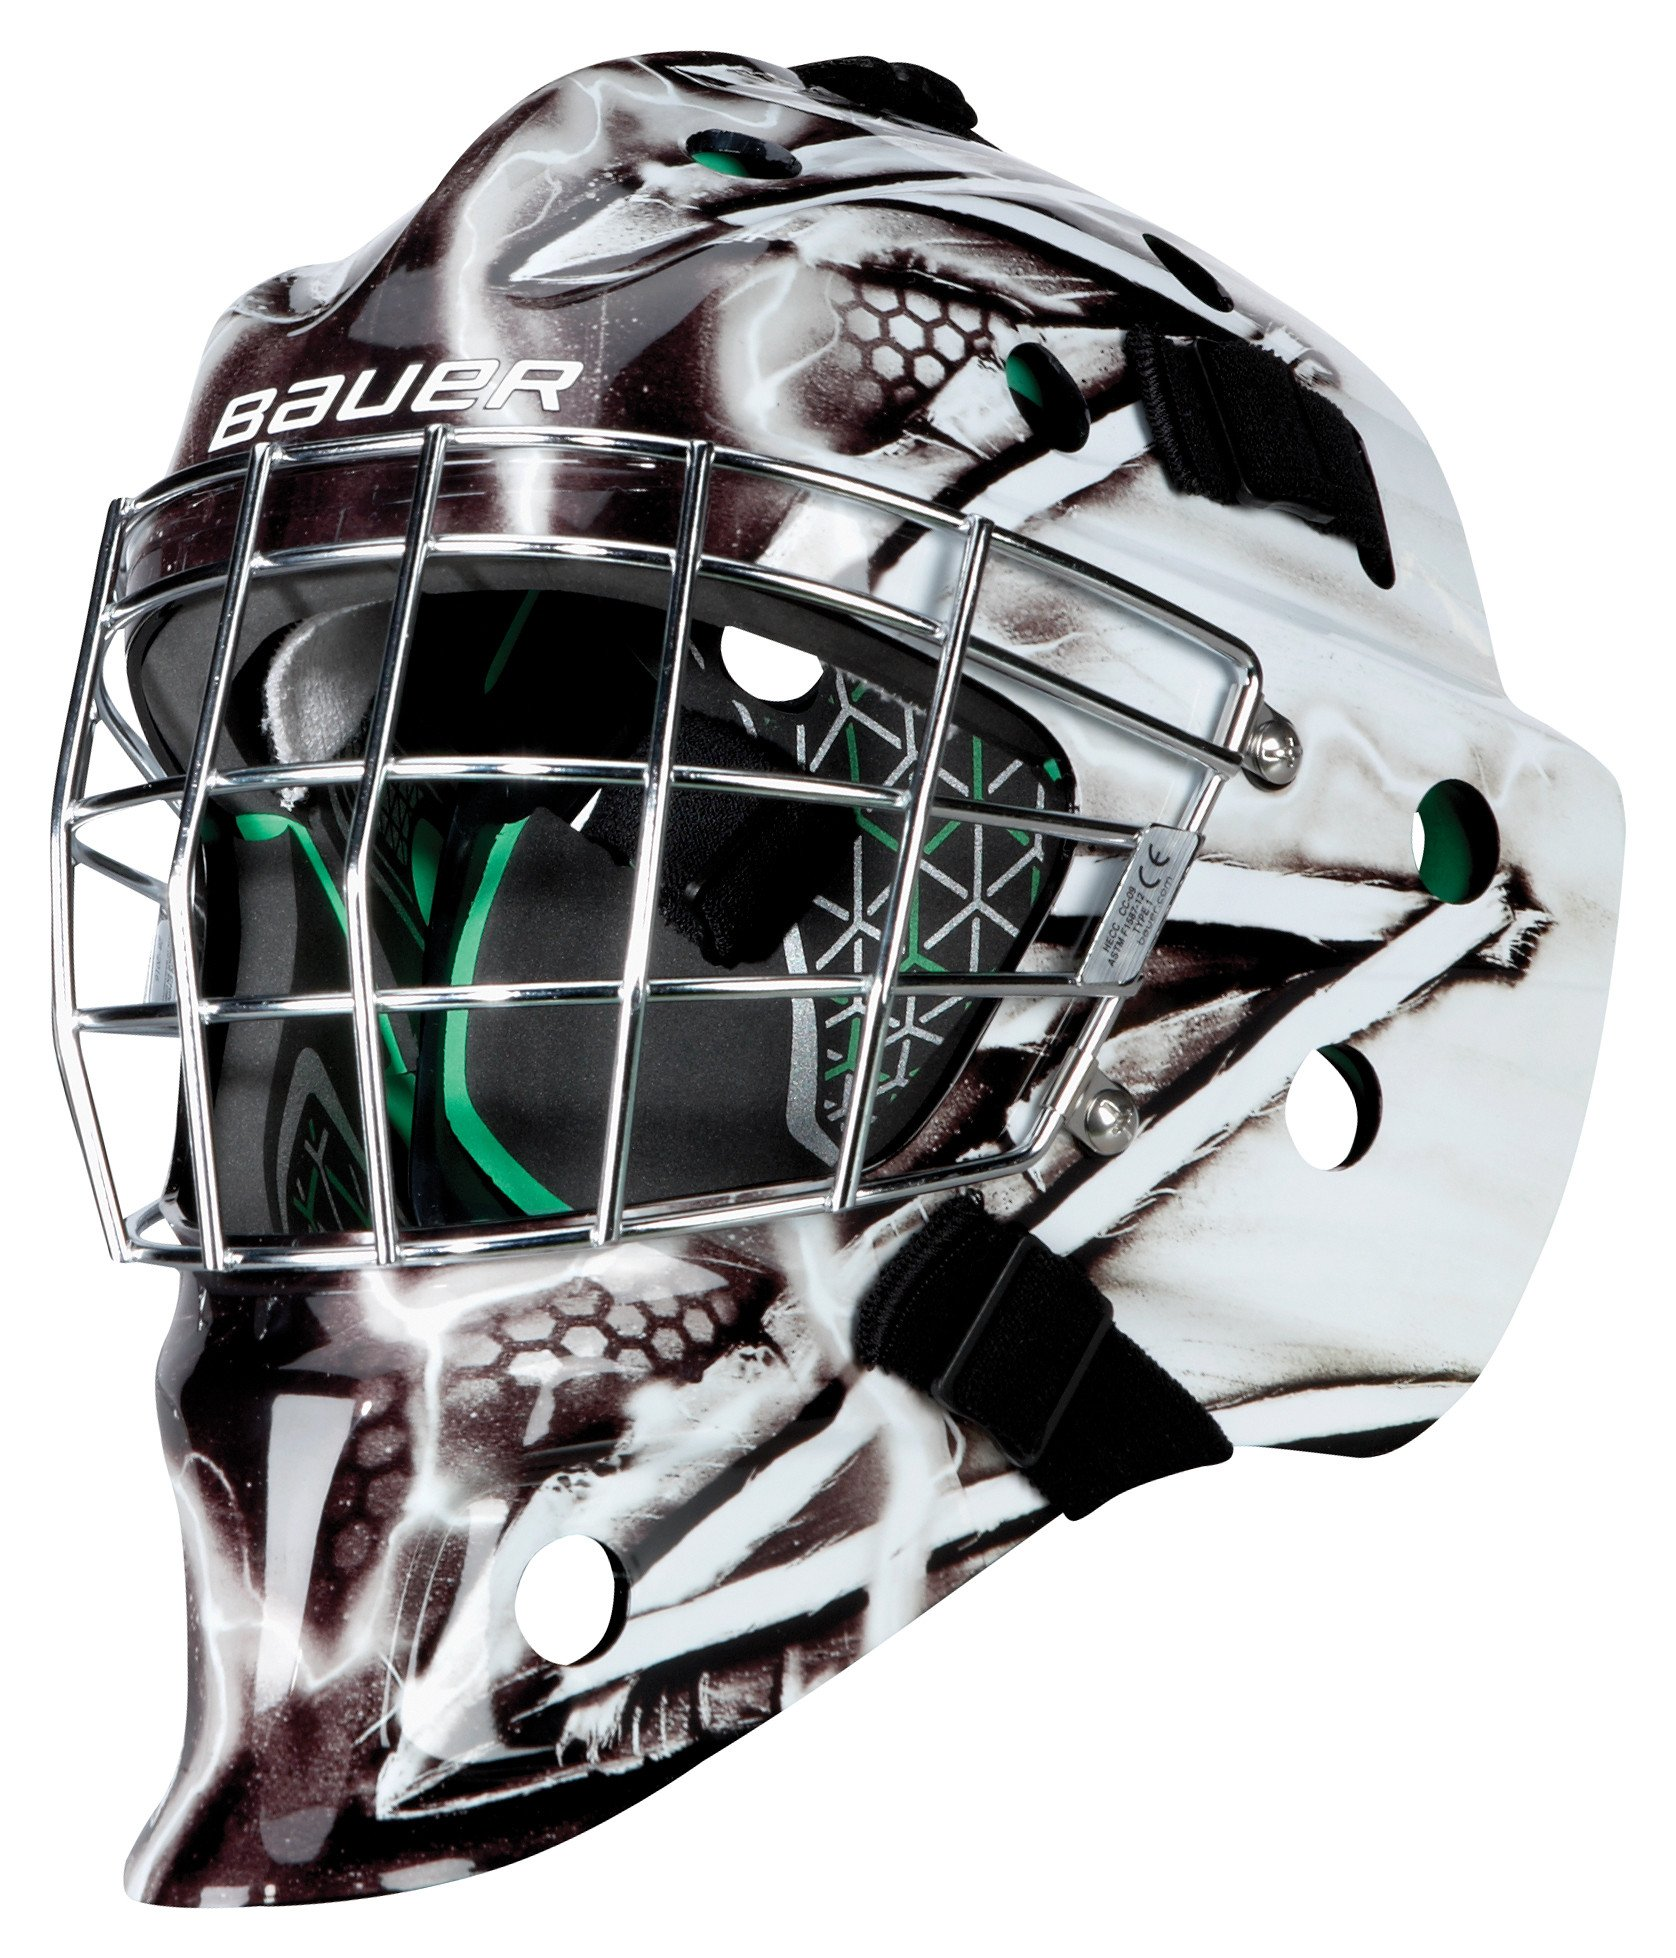 Bauer NME 4 Youth Goalie Mask - L.A. Kings